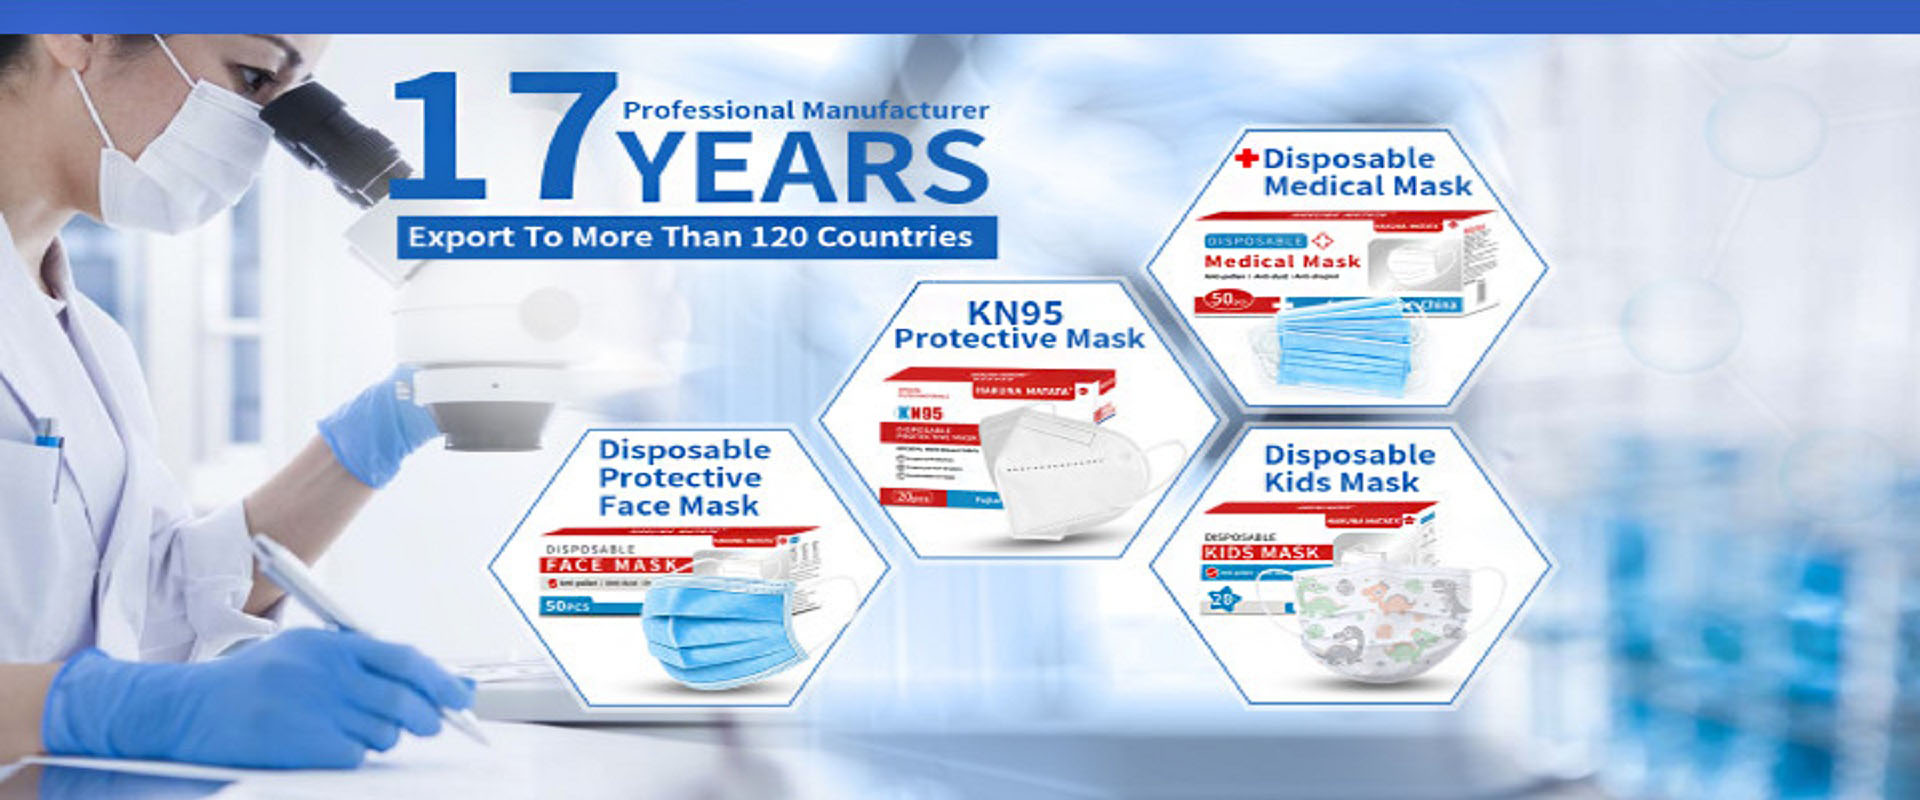 FFP2 Disposable KN95 Protective Mask